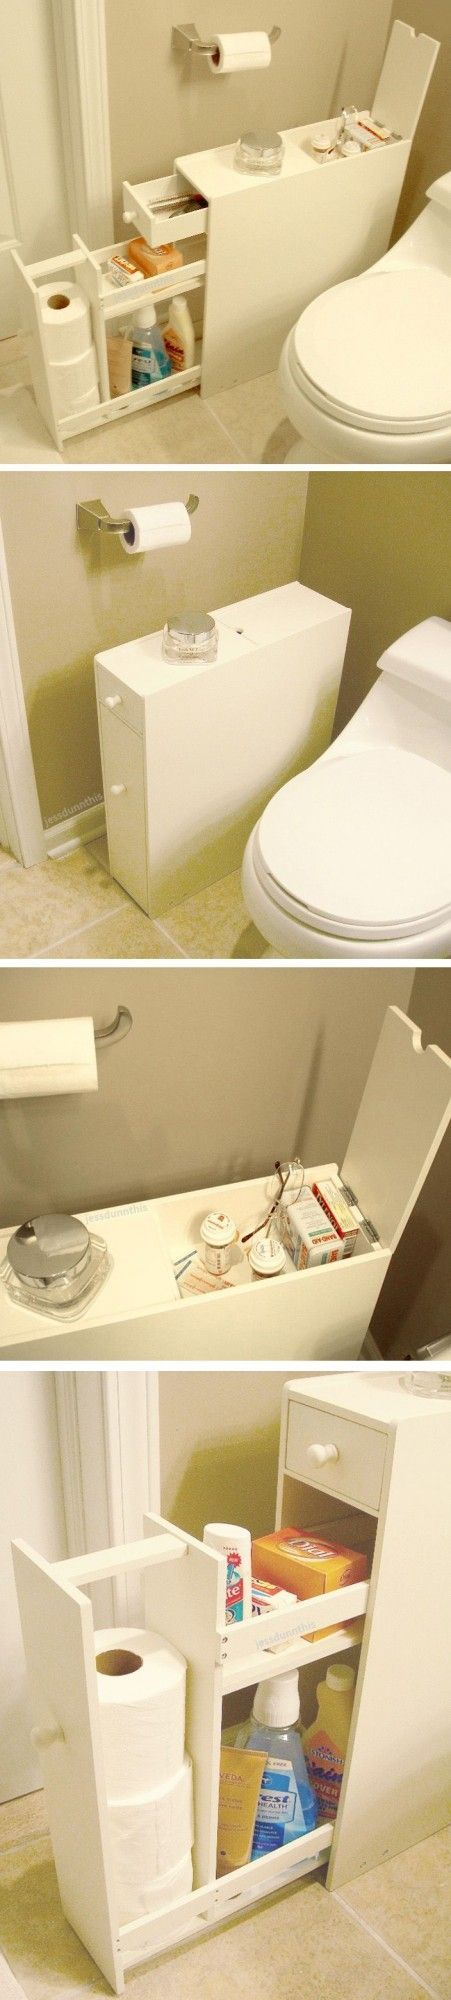 creative bathroom storage bathroomvery small bathroom storage ideas bathroom  shelf ideas pinterest creative bathroom storage ideas